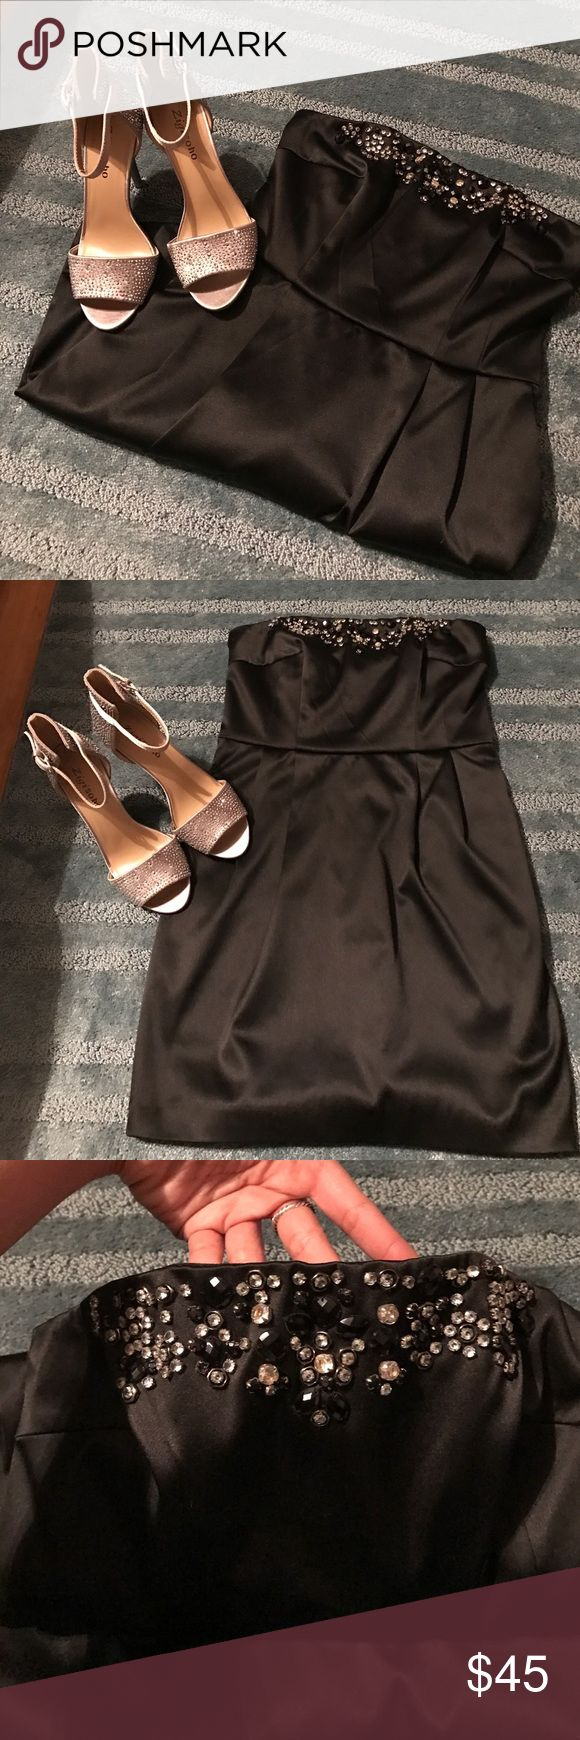 Classic Express LBD This vintage Express LBD is perfect for homecoming or prom for anyone on a budget! All gems are intact and this satin, strapless dress has POCKETS!! Express Dresses Strapless